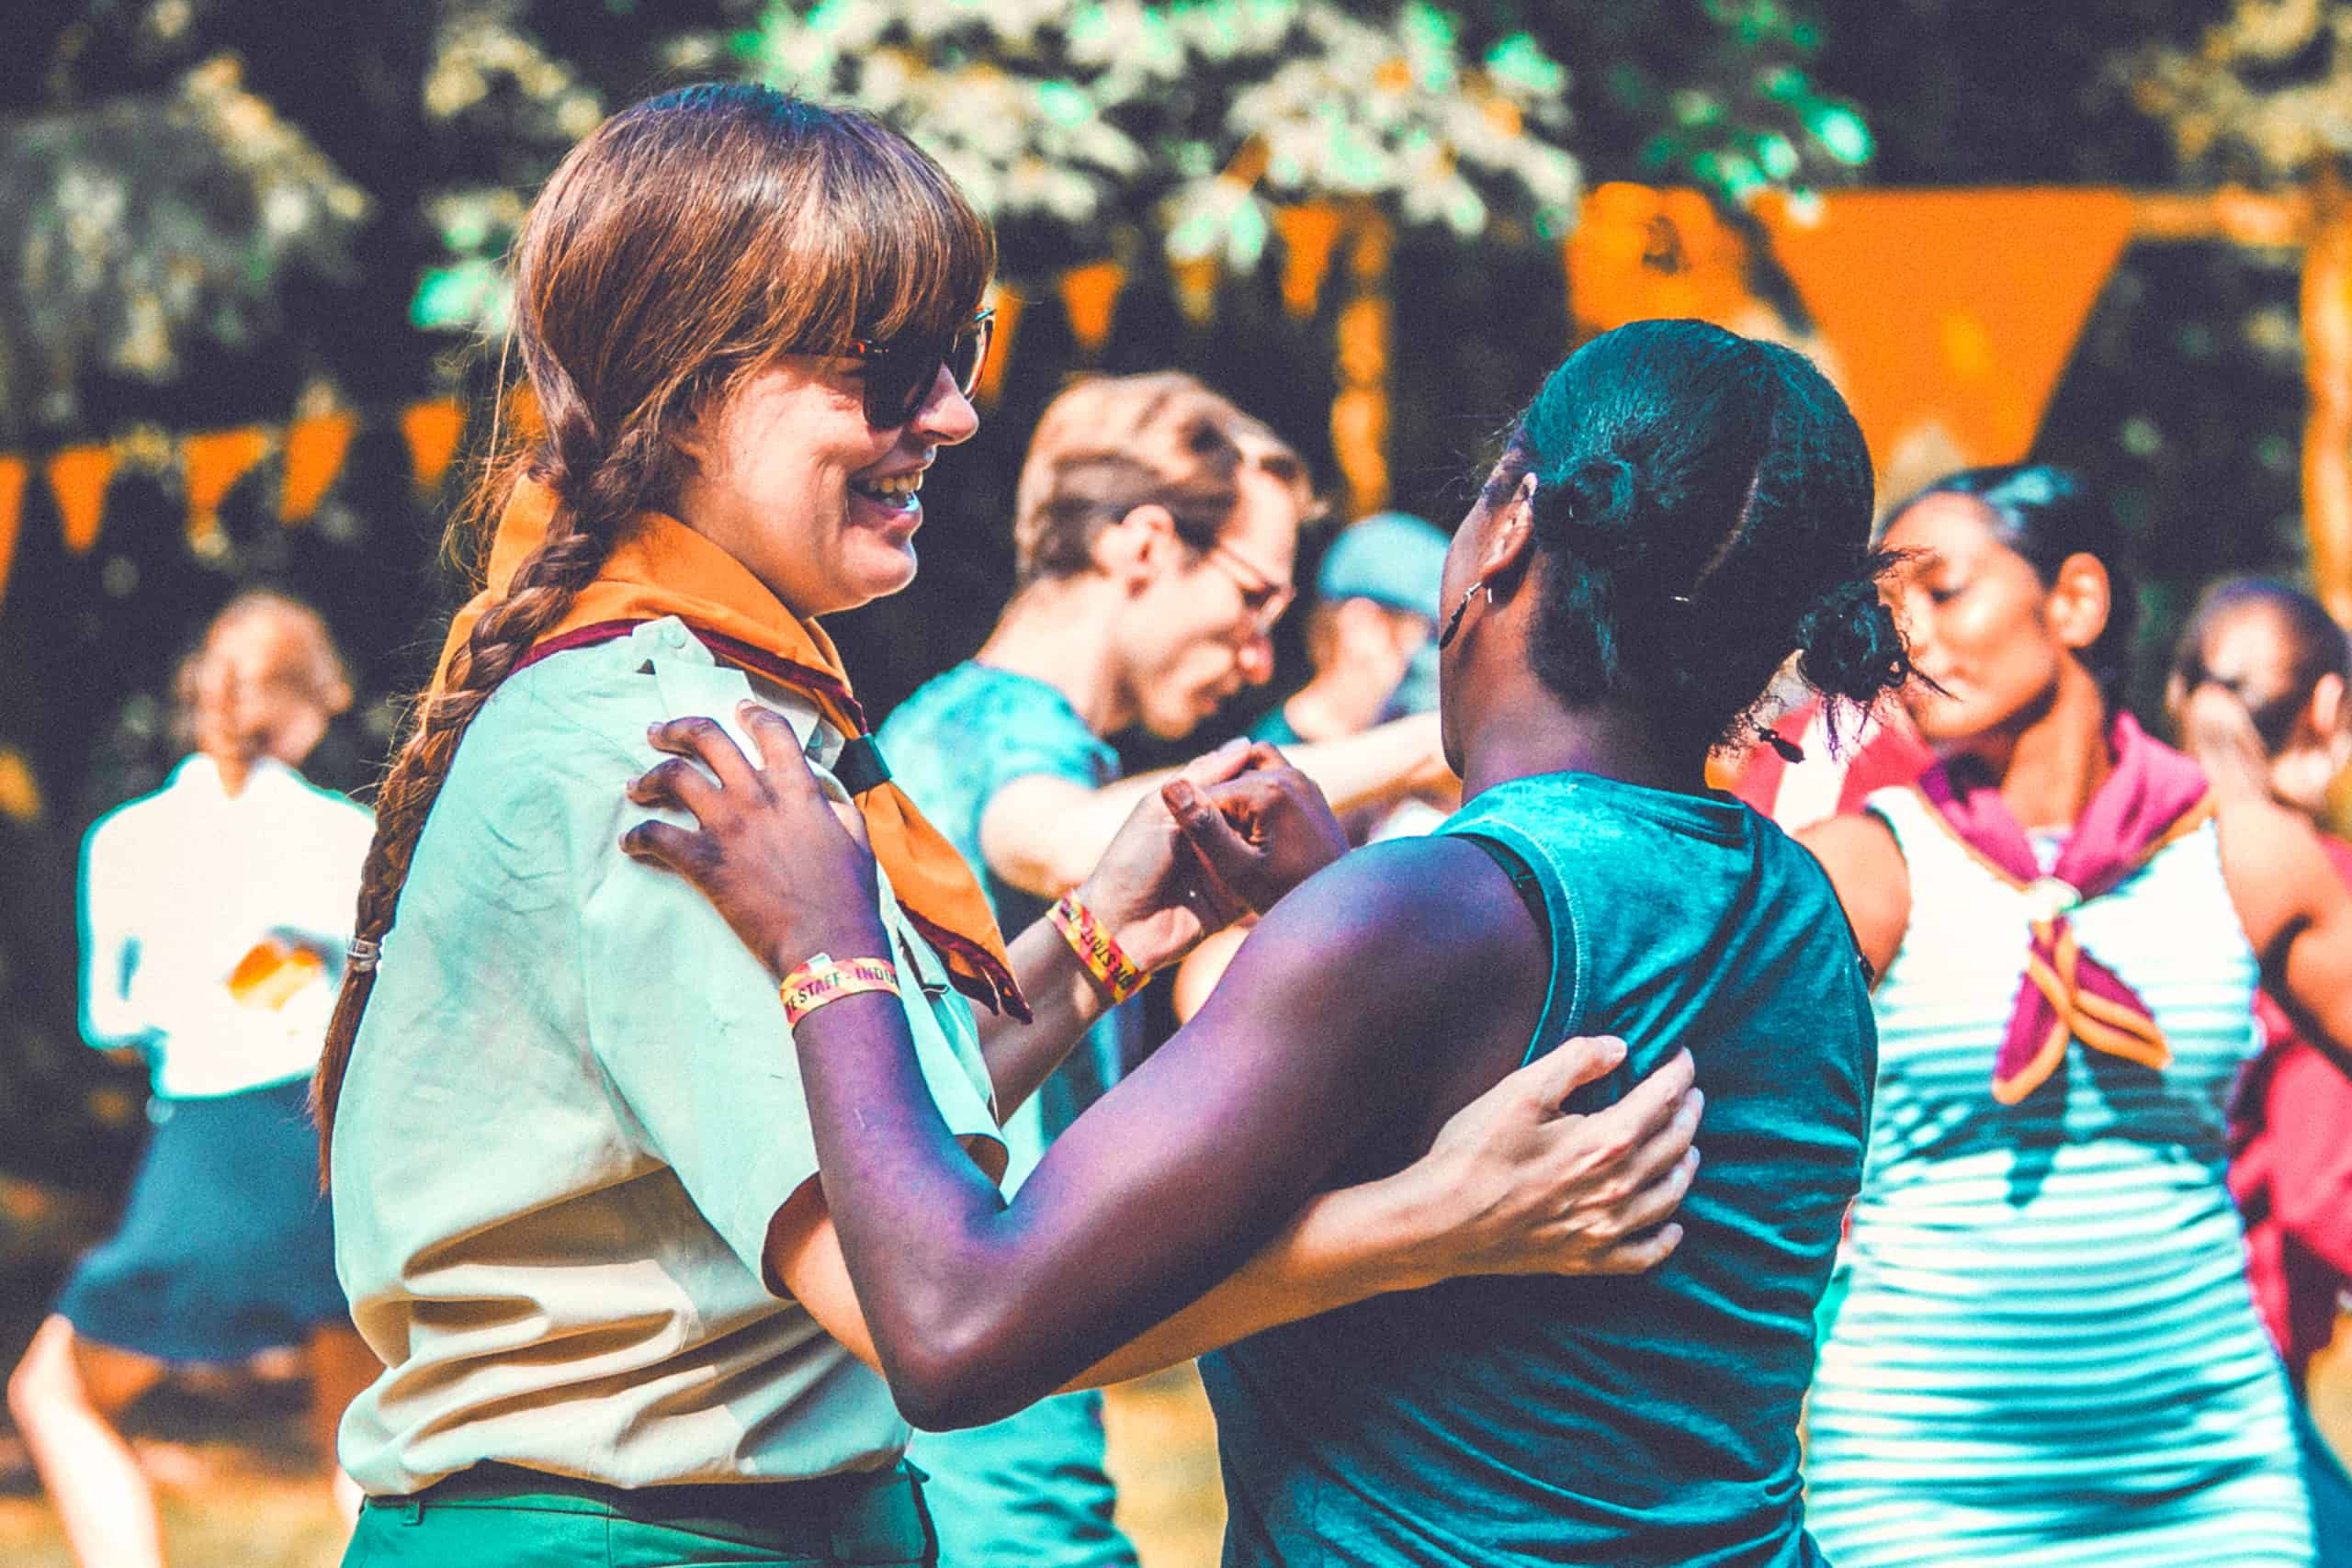 Girls learning some swing dancing at Camp Wildfire. The UK's Best Alternative Festival. UK's Top Unique Event. A summer weekend break in a forest near London and Kent. An outdoor woodland retreat featuring adventure activities, live music, DJs, parties and camping. Half summer adventure activity camp, half music festival, for adults only.